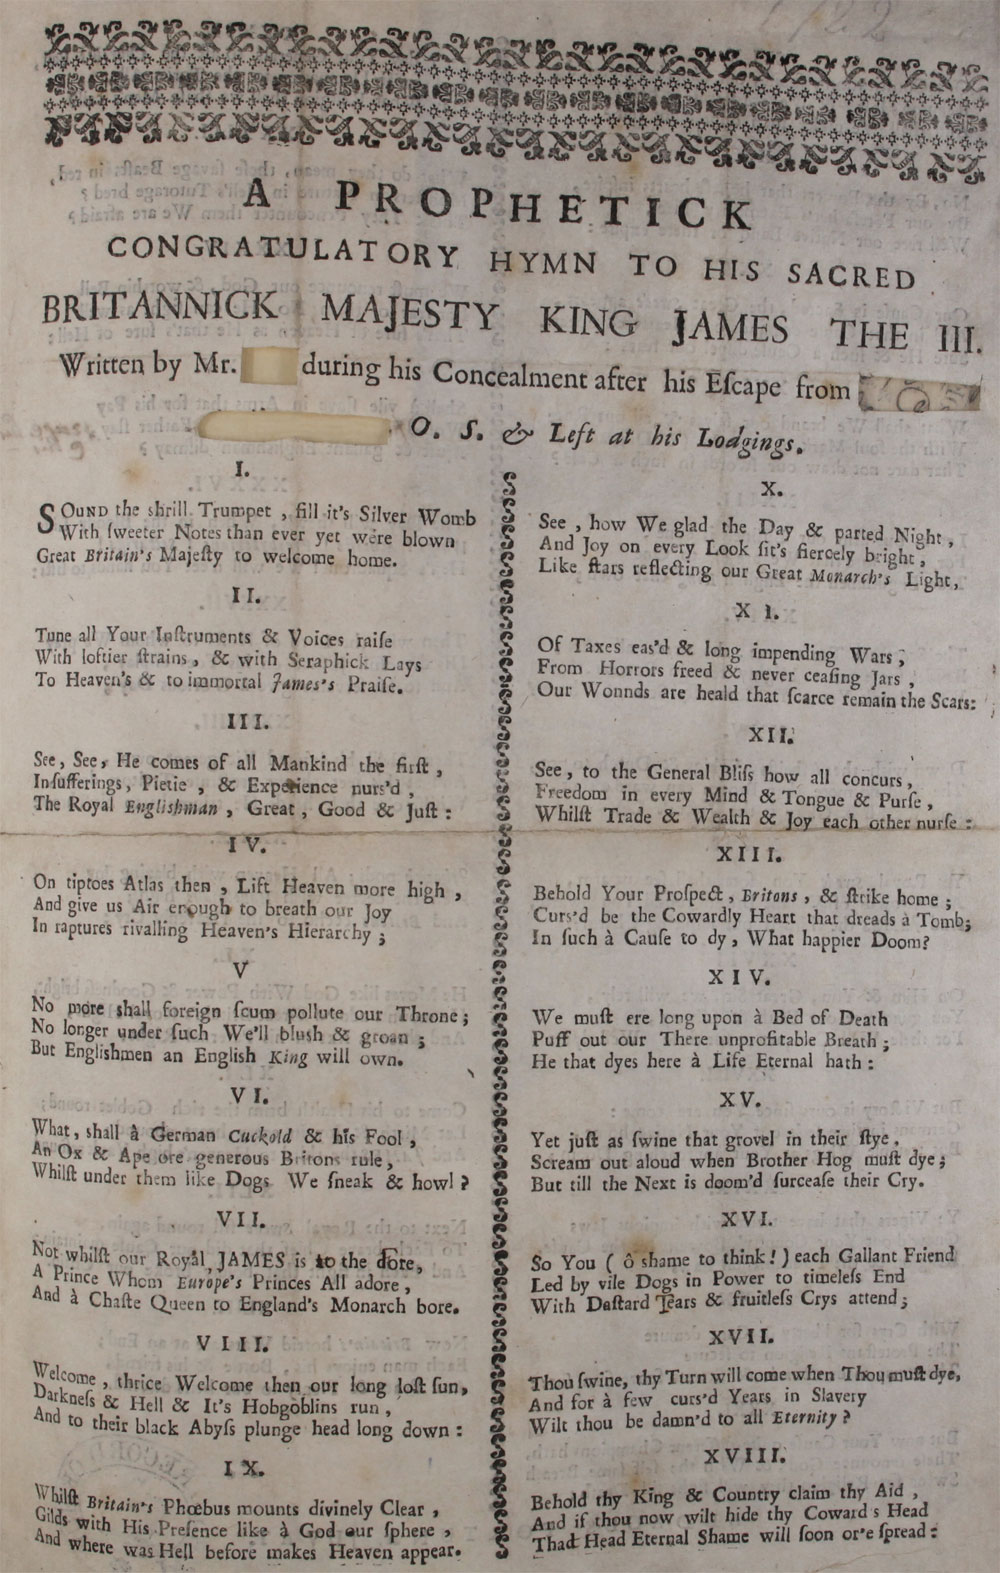 Extract from a Jacobite song consisting of forty-three verses, 1722, SP 35/40 f179